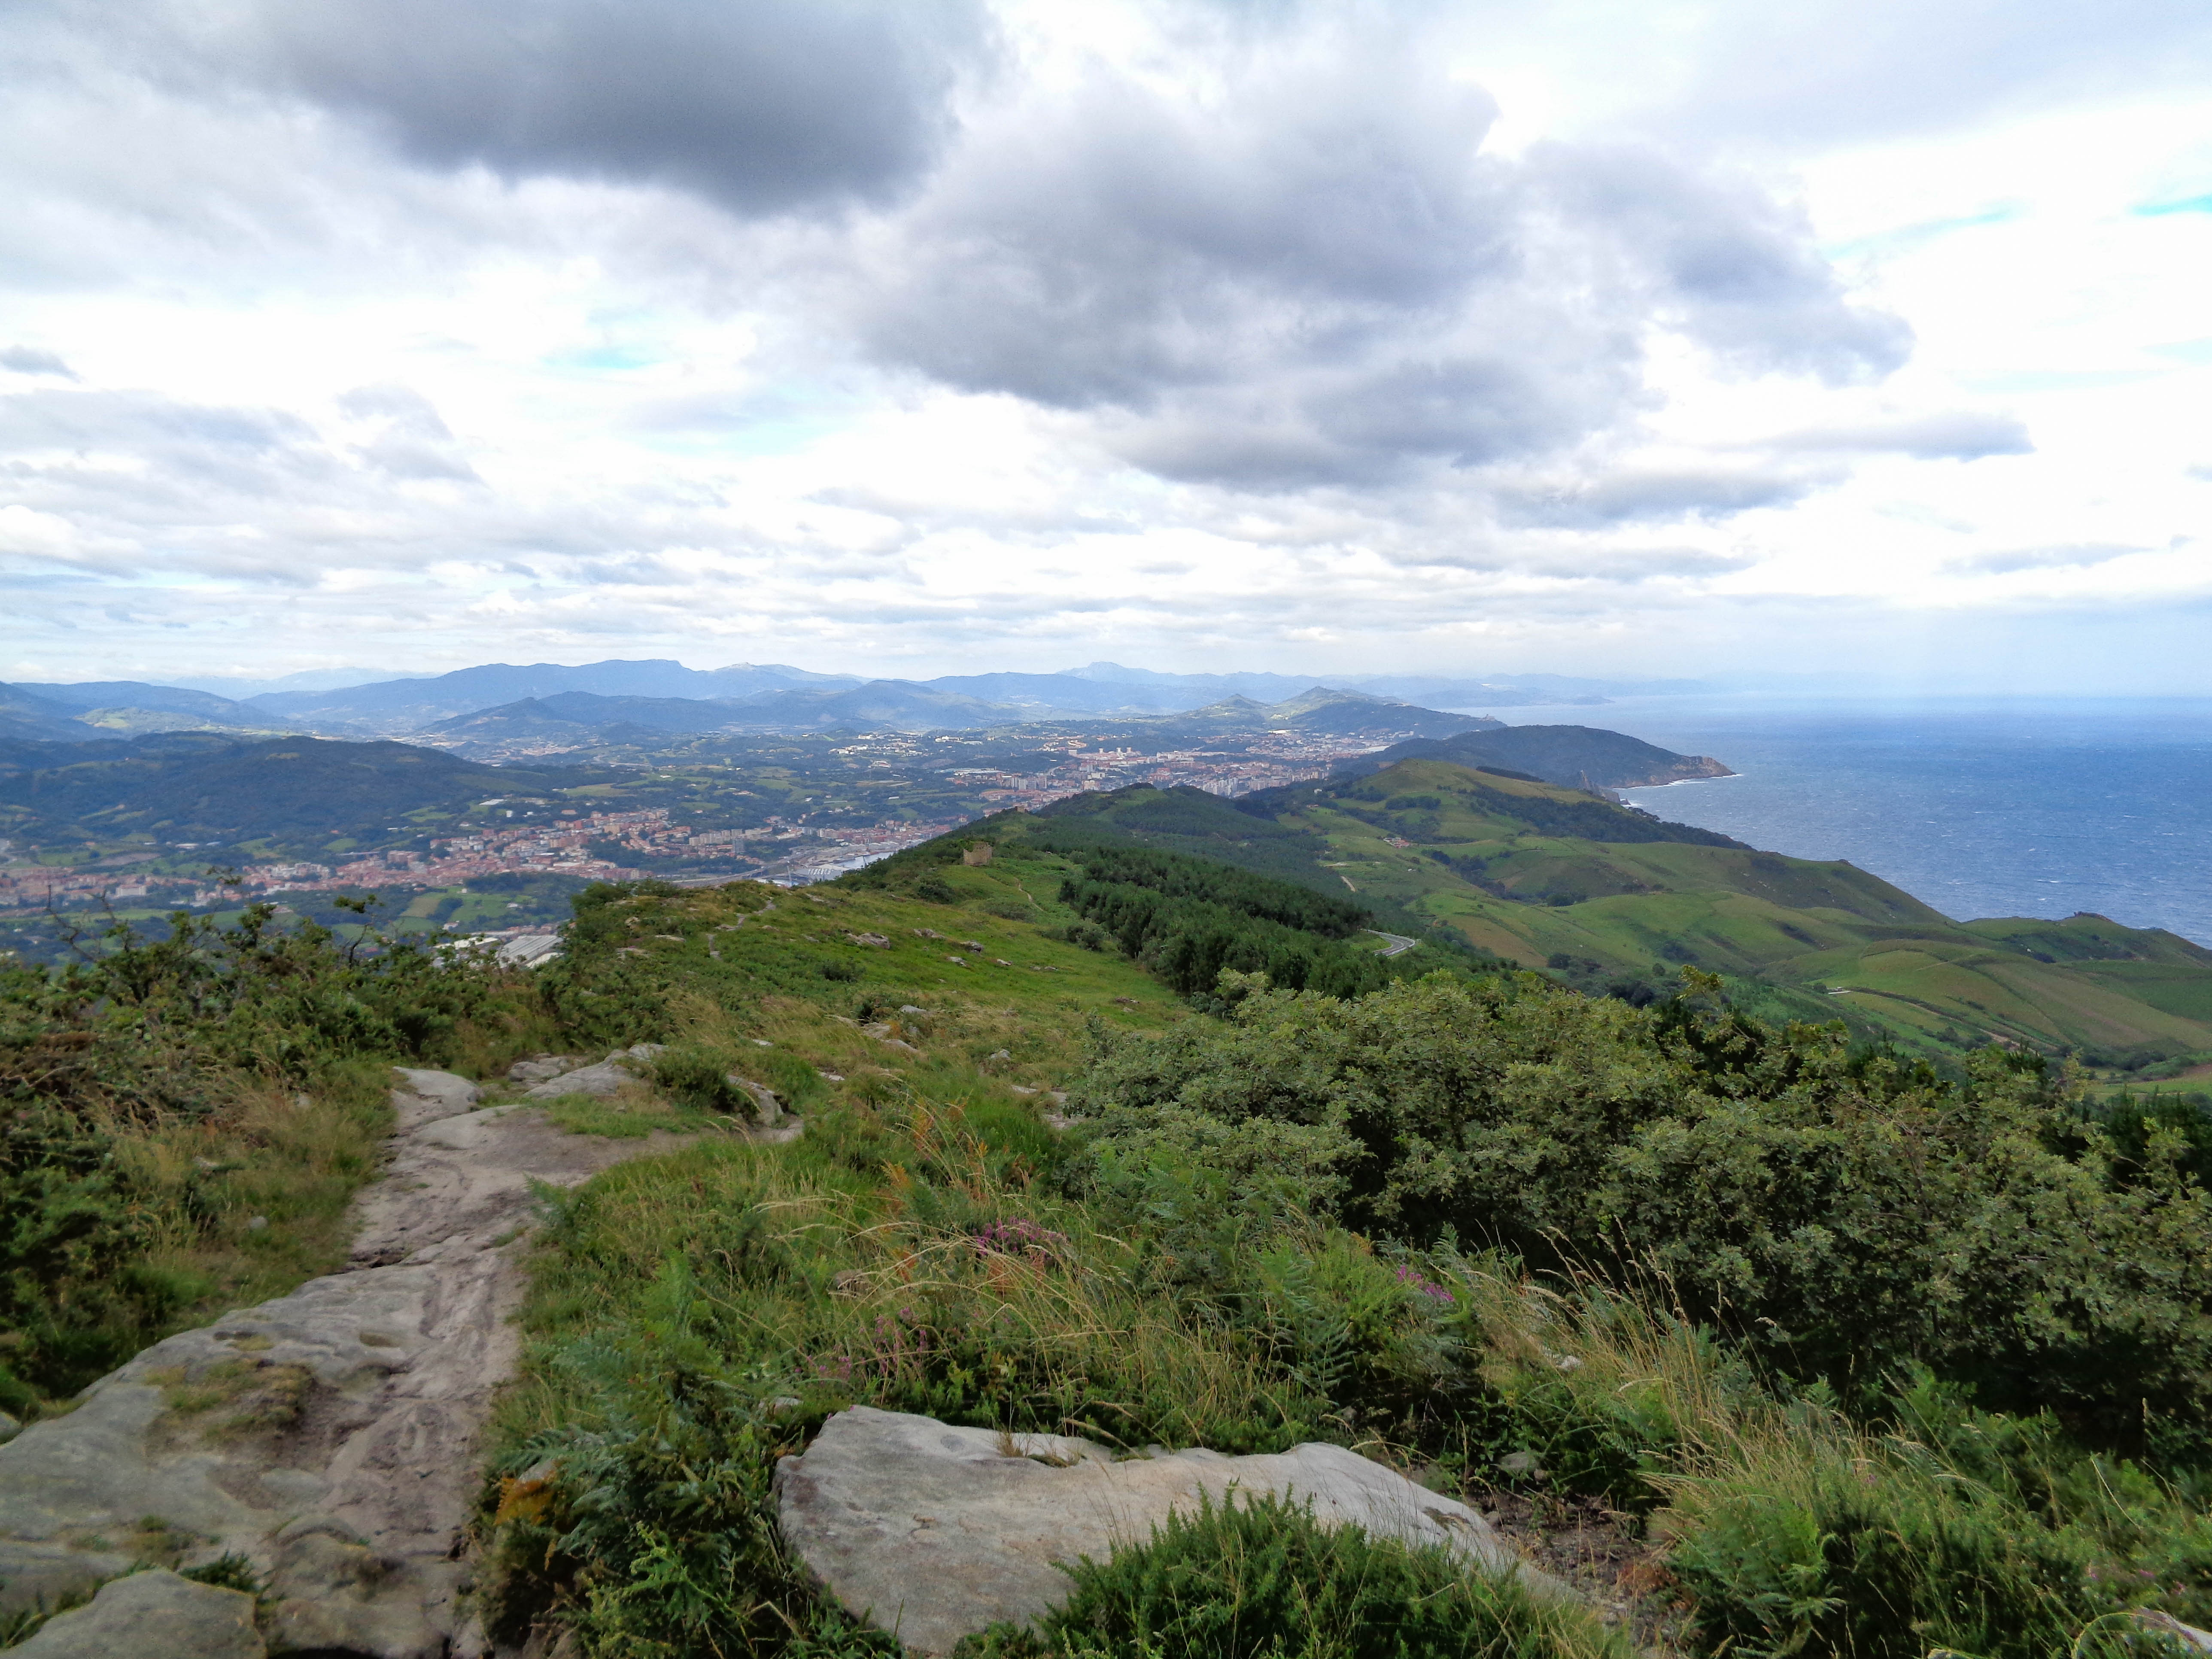 View over the Basque Country